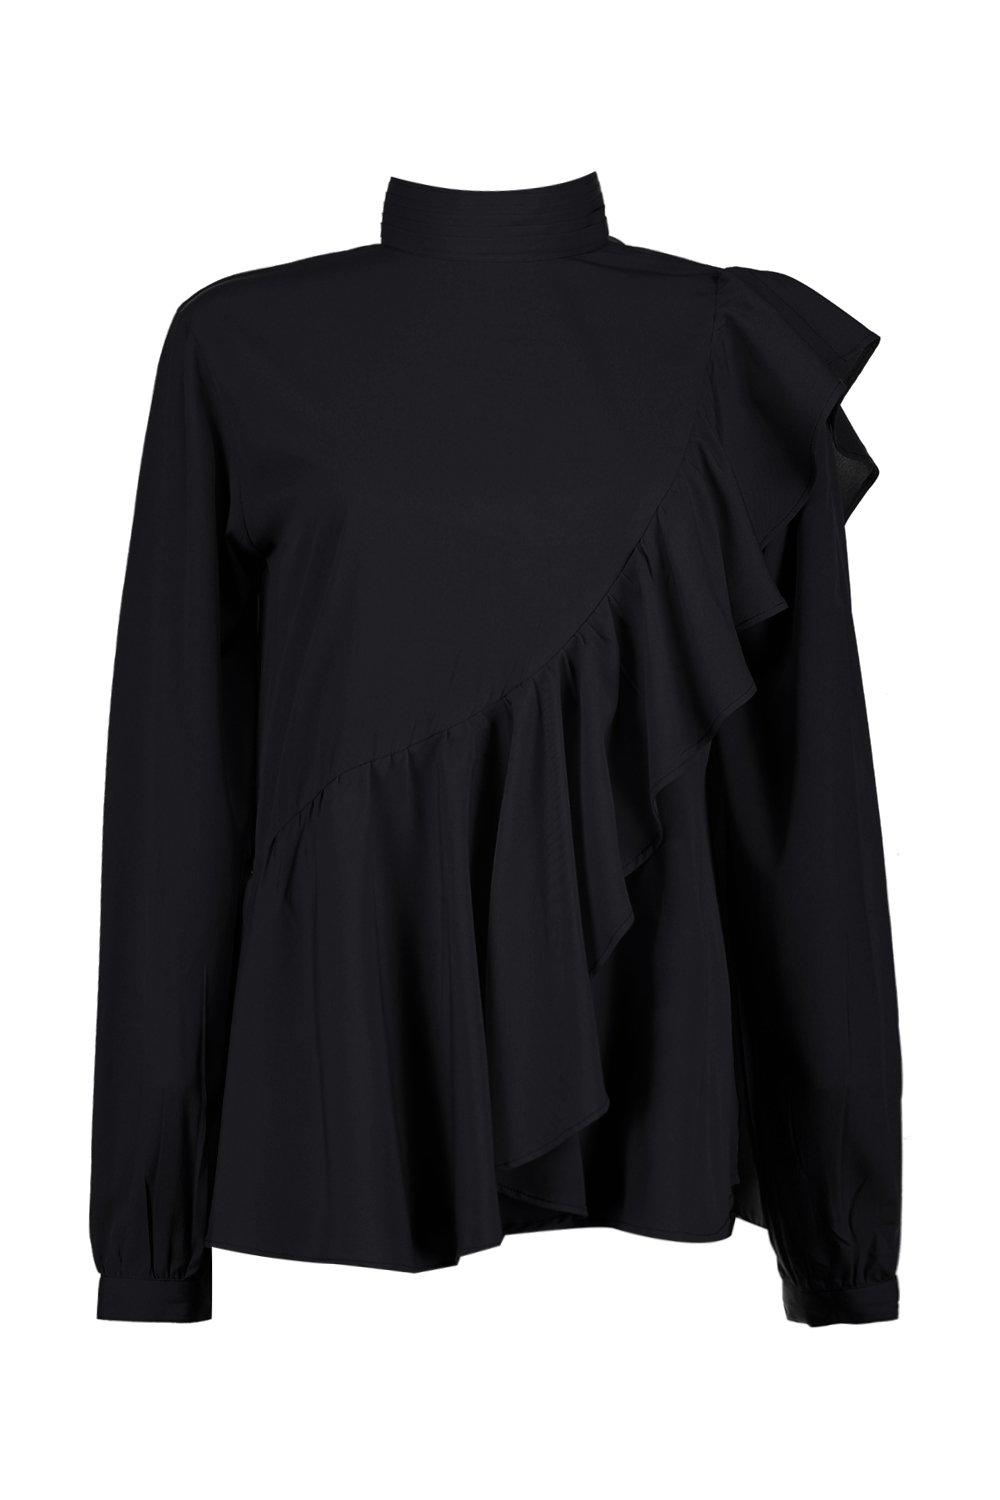 Boohoo-Willow-Blusa-A-Collo-Alto-Con-Volant-per-Donna